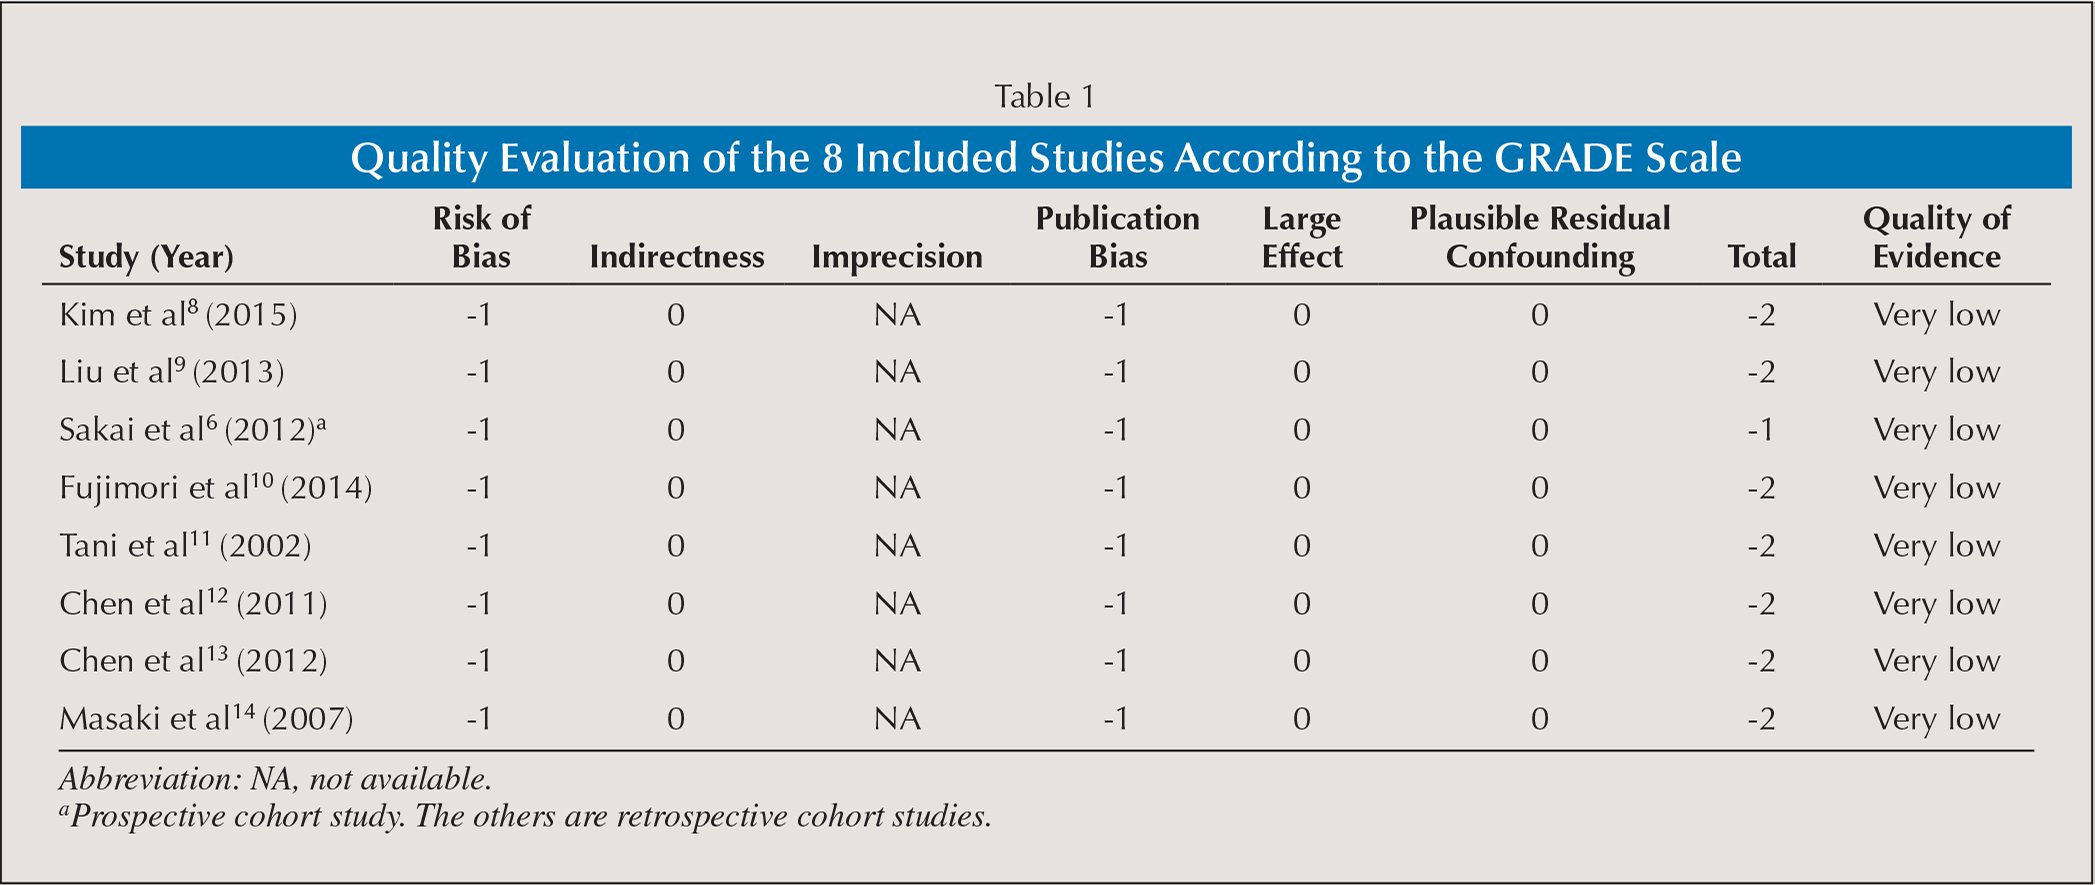 Quality Evaluation of the 8 Included Studies According to the GRADE Scale